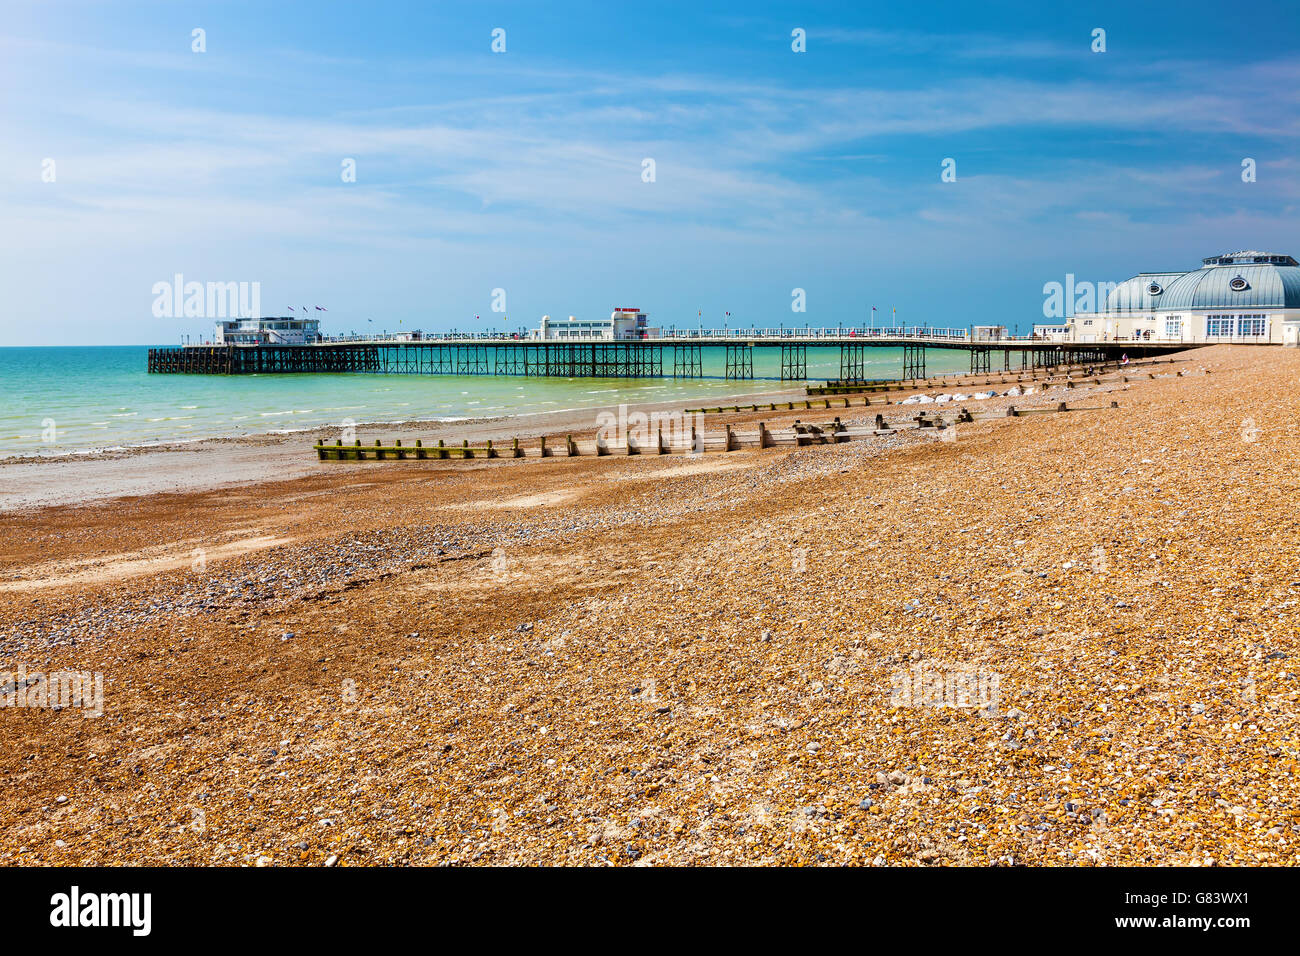 The beach and pier at Worthing West Sussex England UK Europe - Stock Image